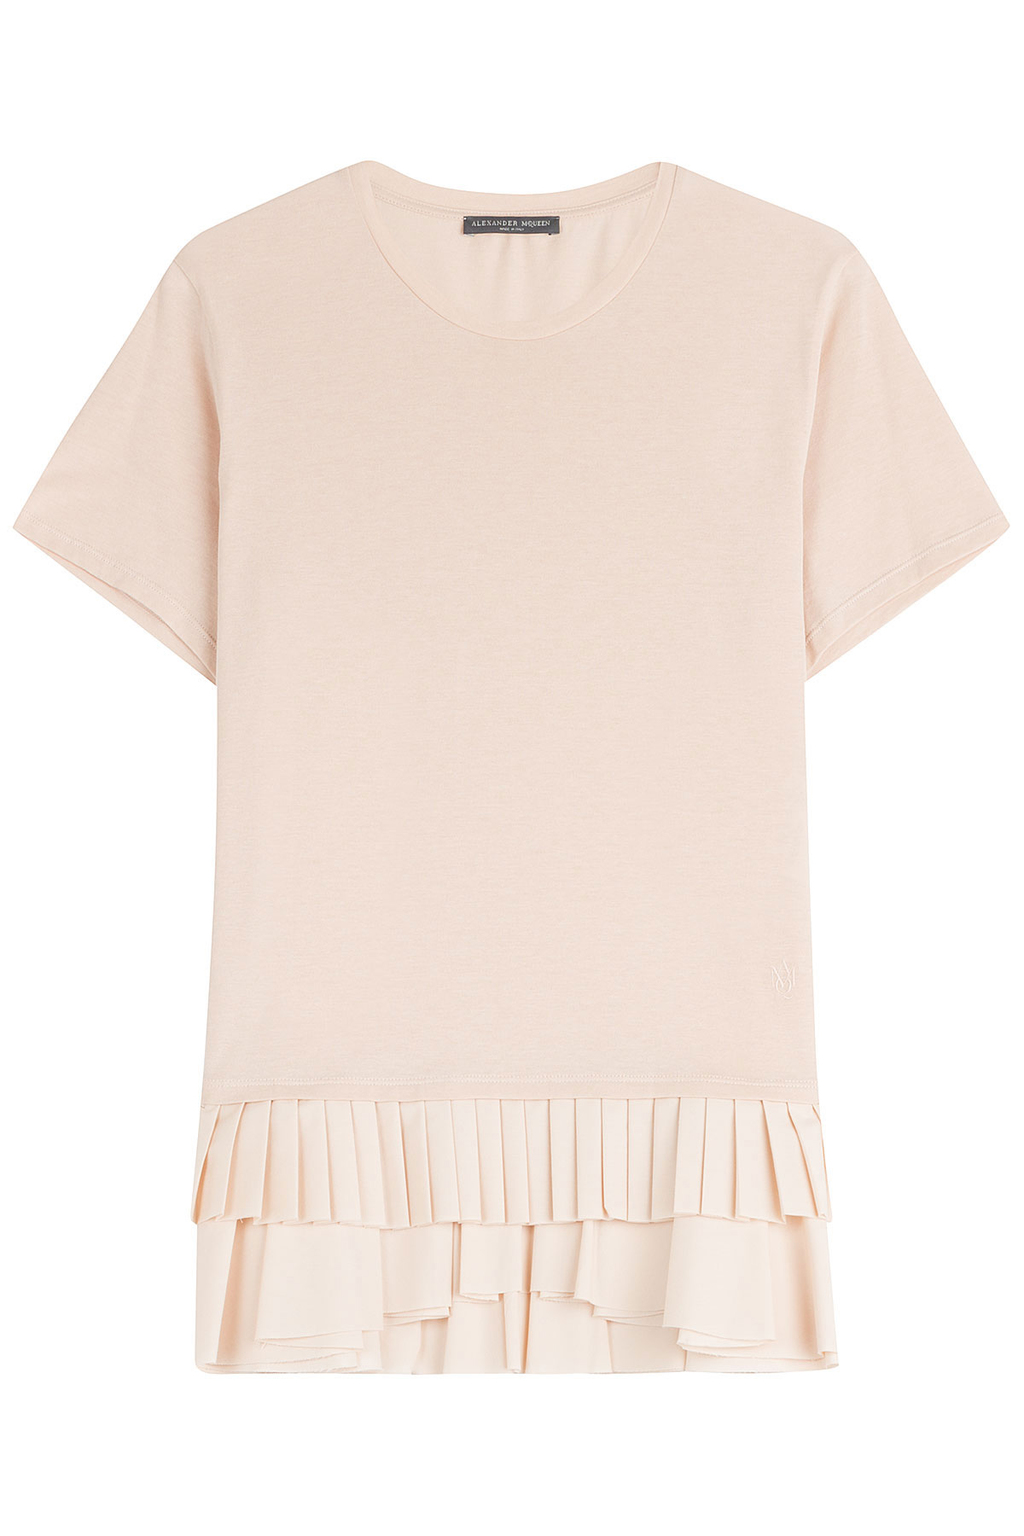 Pleated Ruffle T Shirt - pattern: plain; style: t-shirt; predominant colour: blush; occasions: casual; length: standard; fibres: cotton - 100%; fit: body skimming; neckline: crew; sleeve length: short sleeve; sleeve style: standard; pattern type: fabric; texture group: jersey - stretchy/drapey; season: s/s 2016; wardrobe: basic